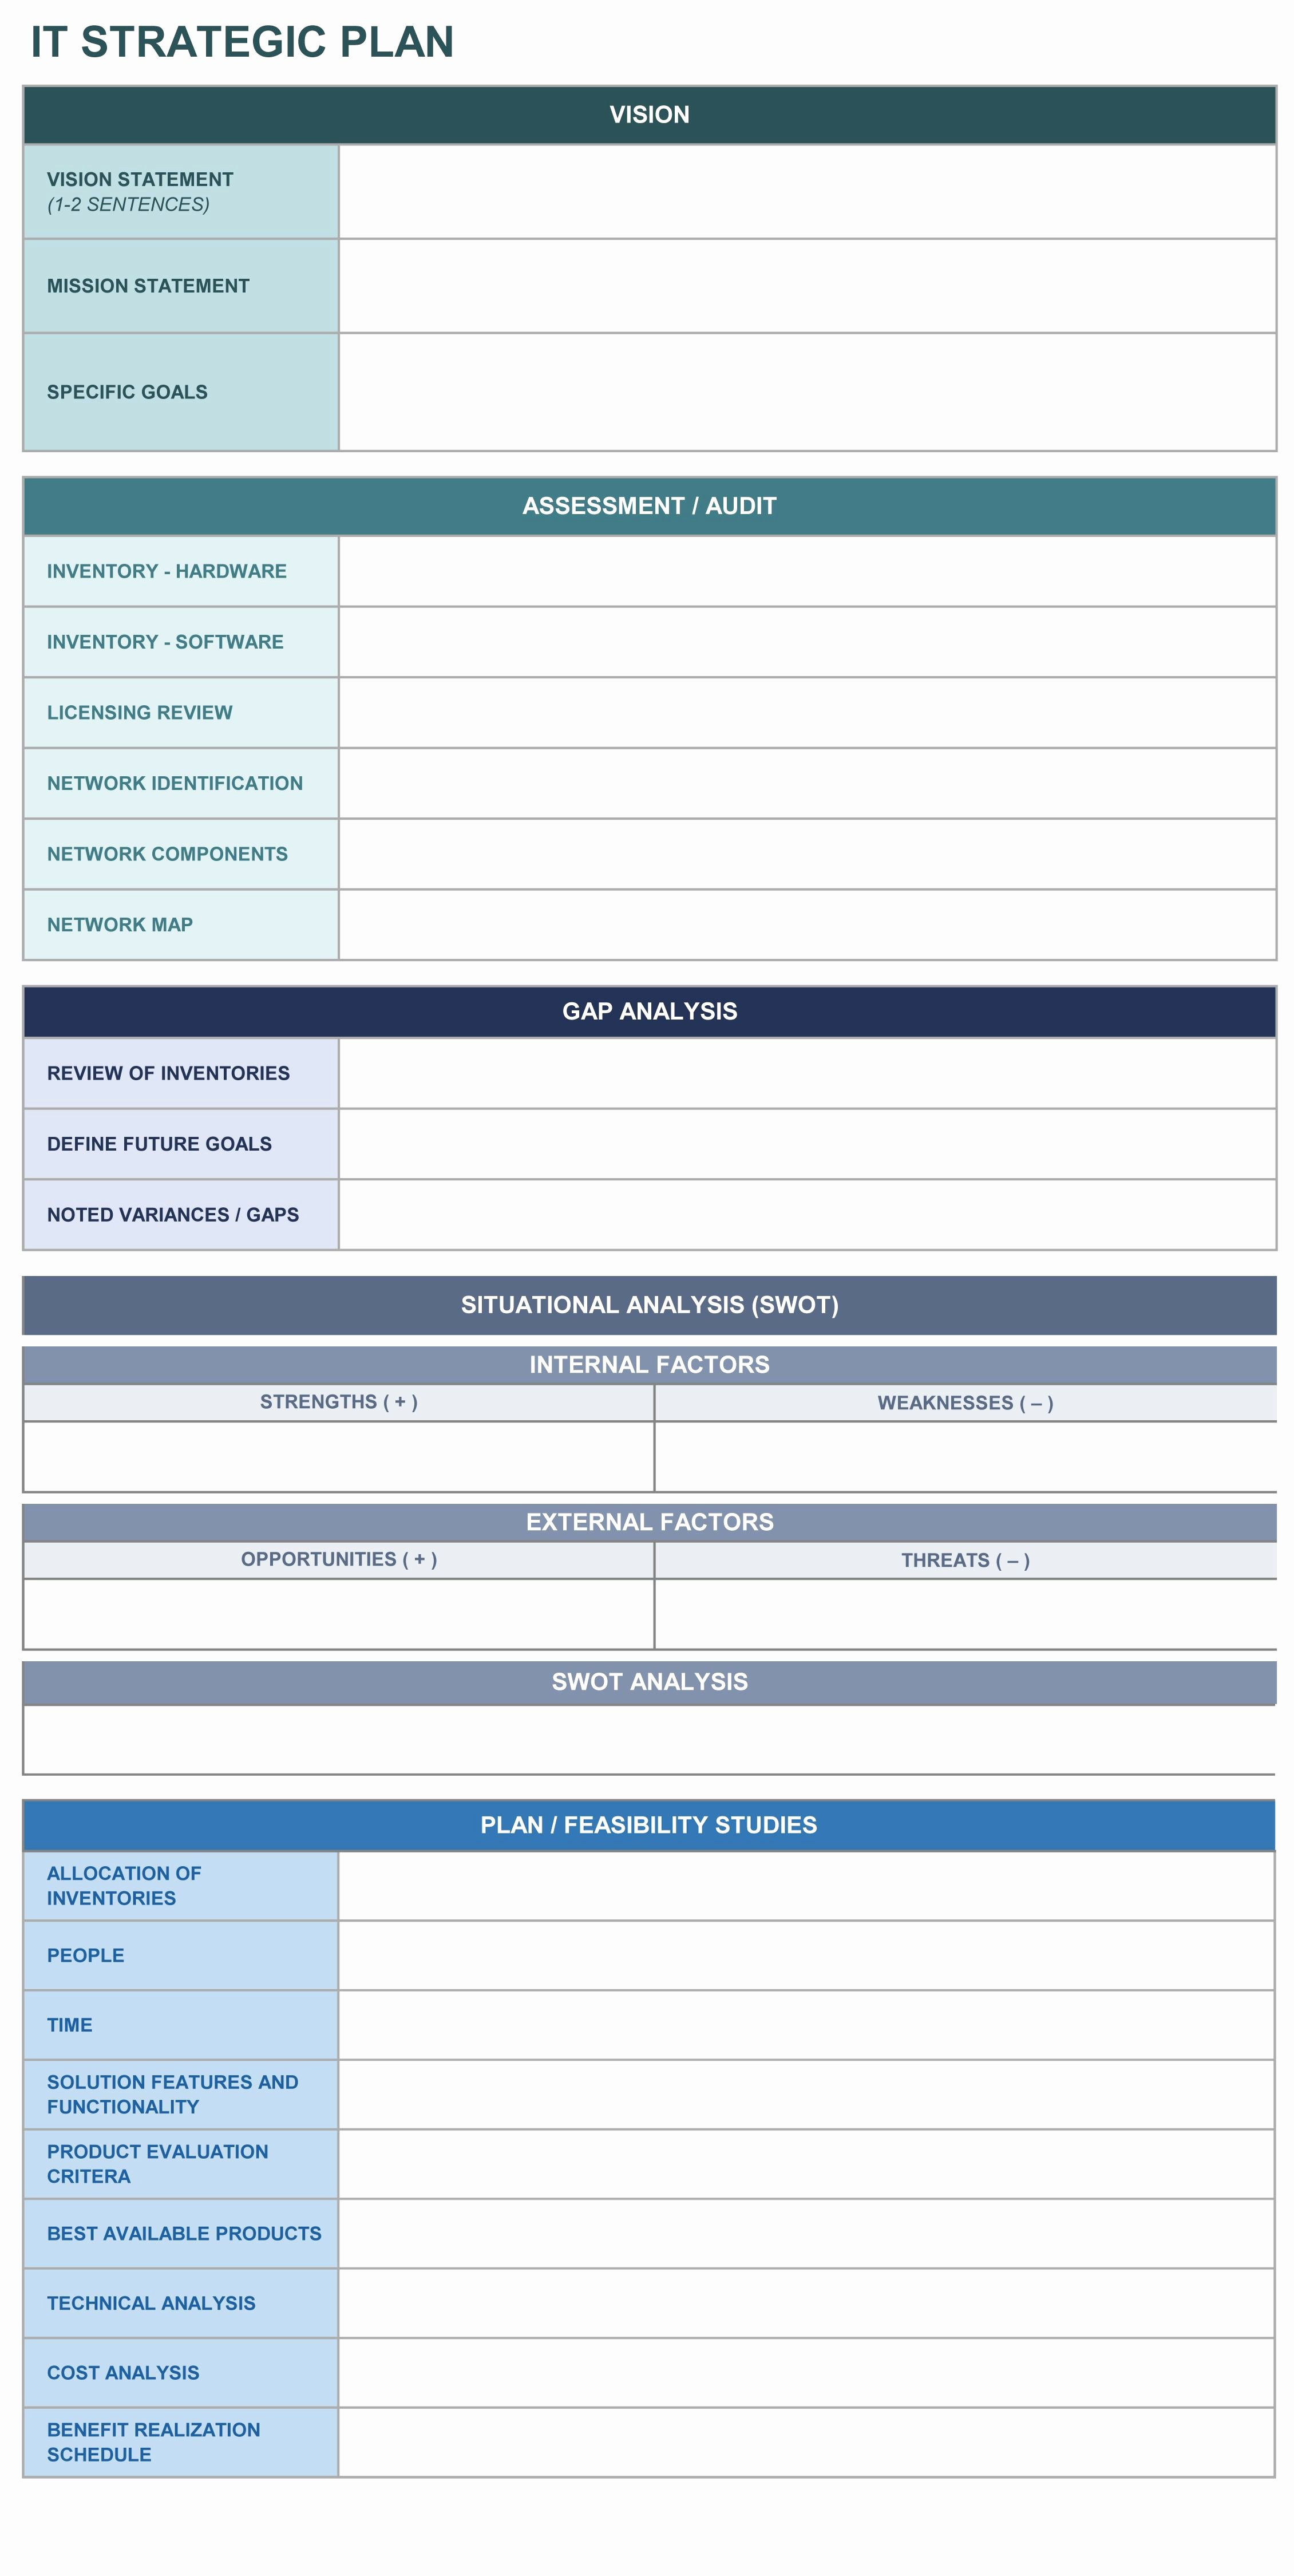 Strategic Action Plan Template New It Strategic Plan Excel Template